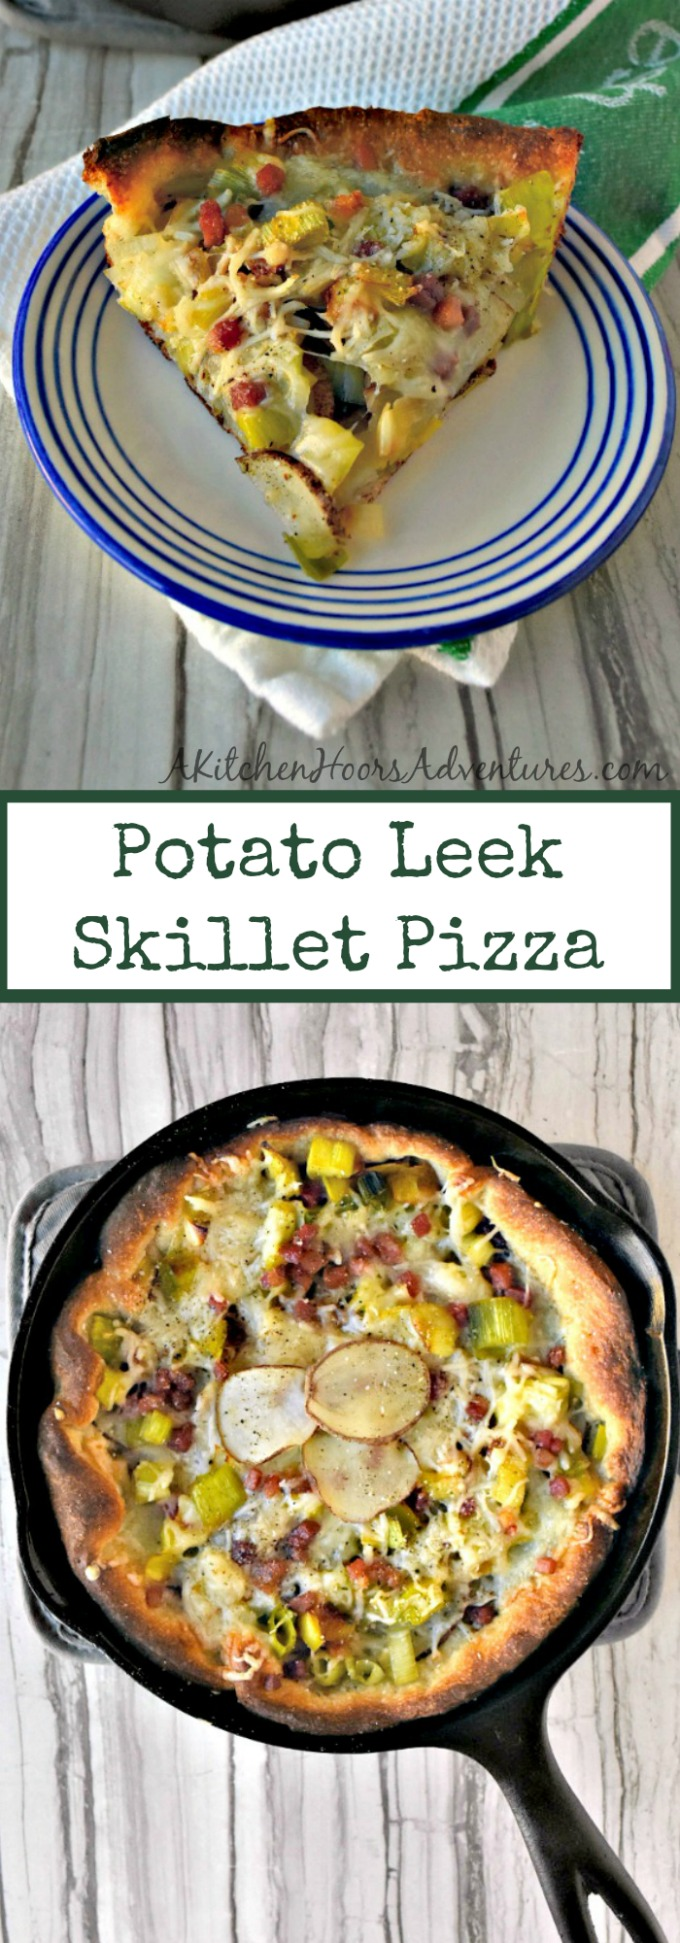 Potato Leek Skillet Pizza packs amazing flavor in a small package. All the delicious flavors are used in moderation for this crispy crusted appetizer or main dish pizza.